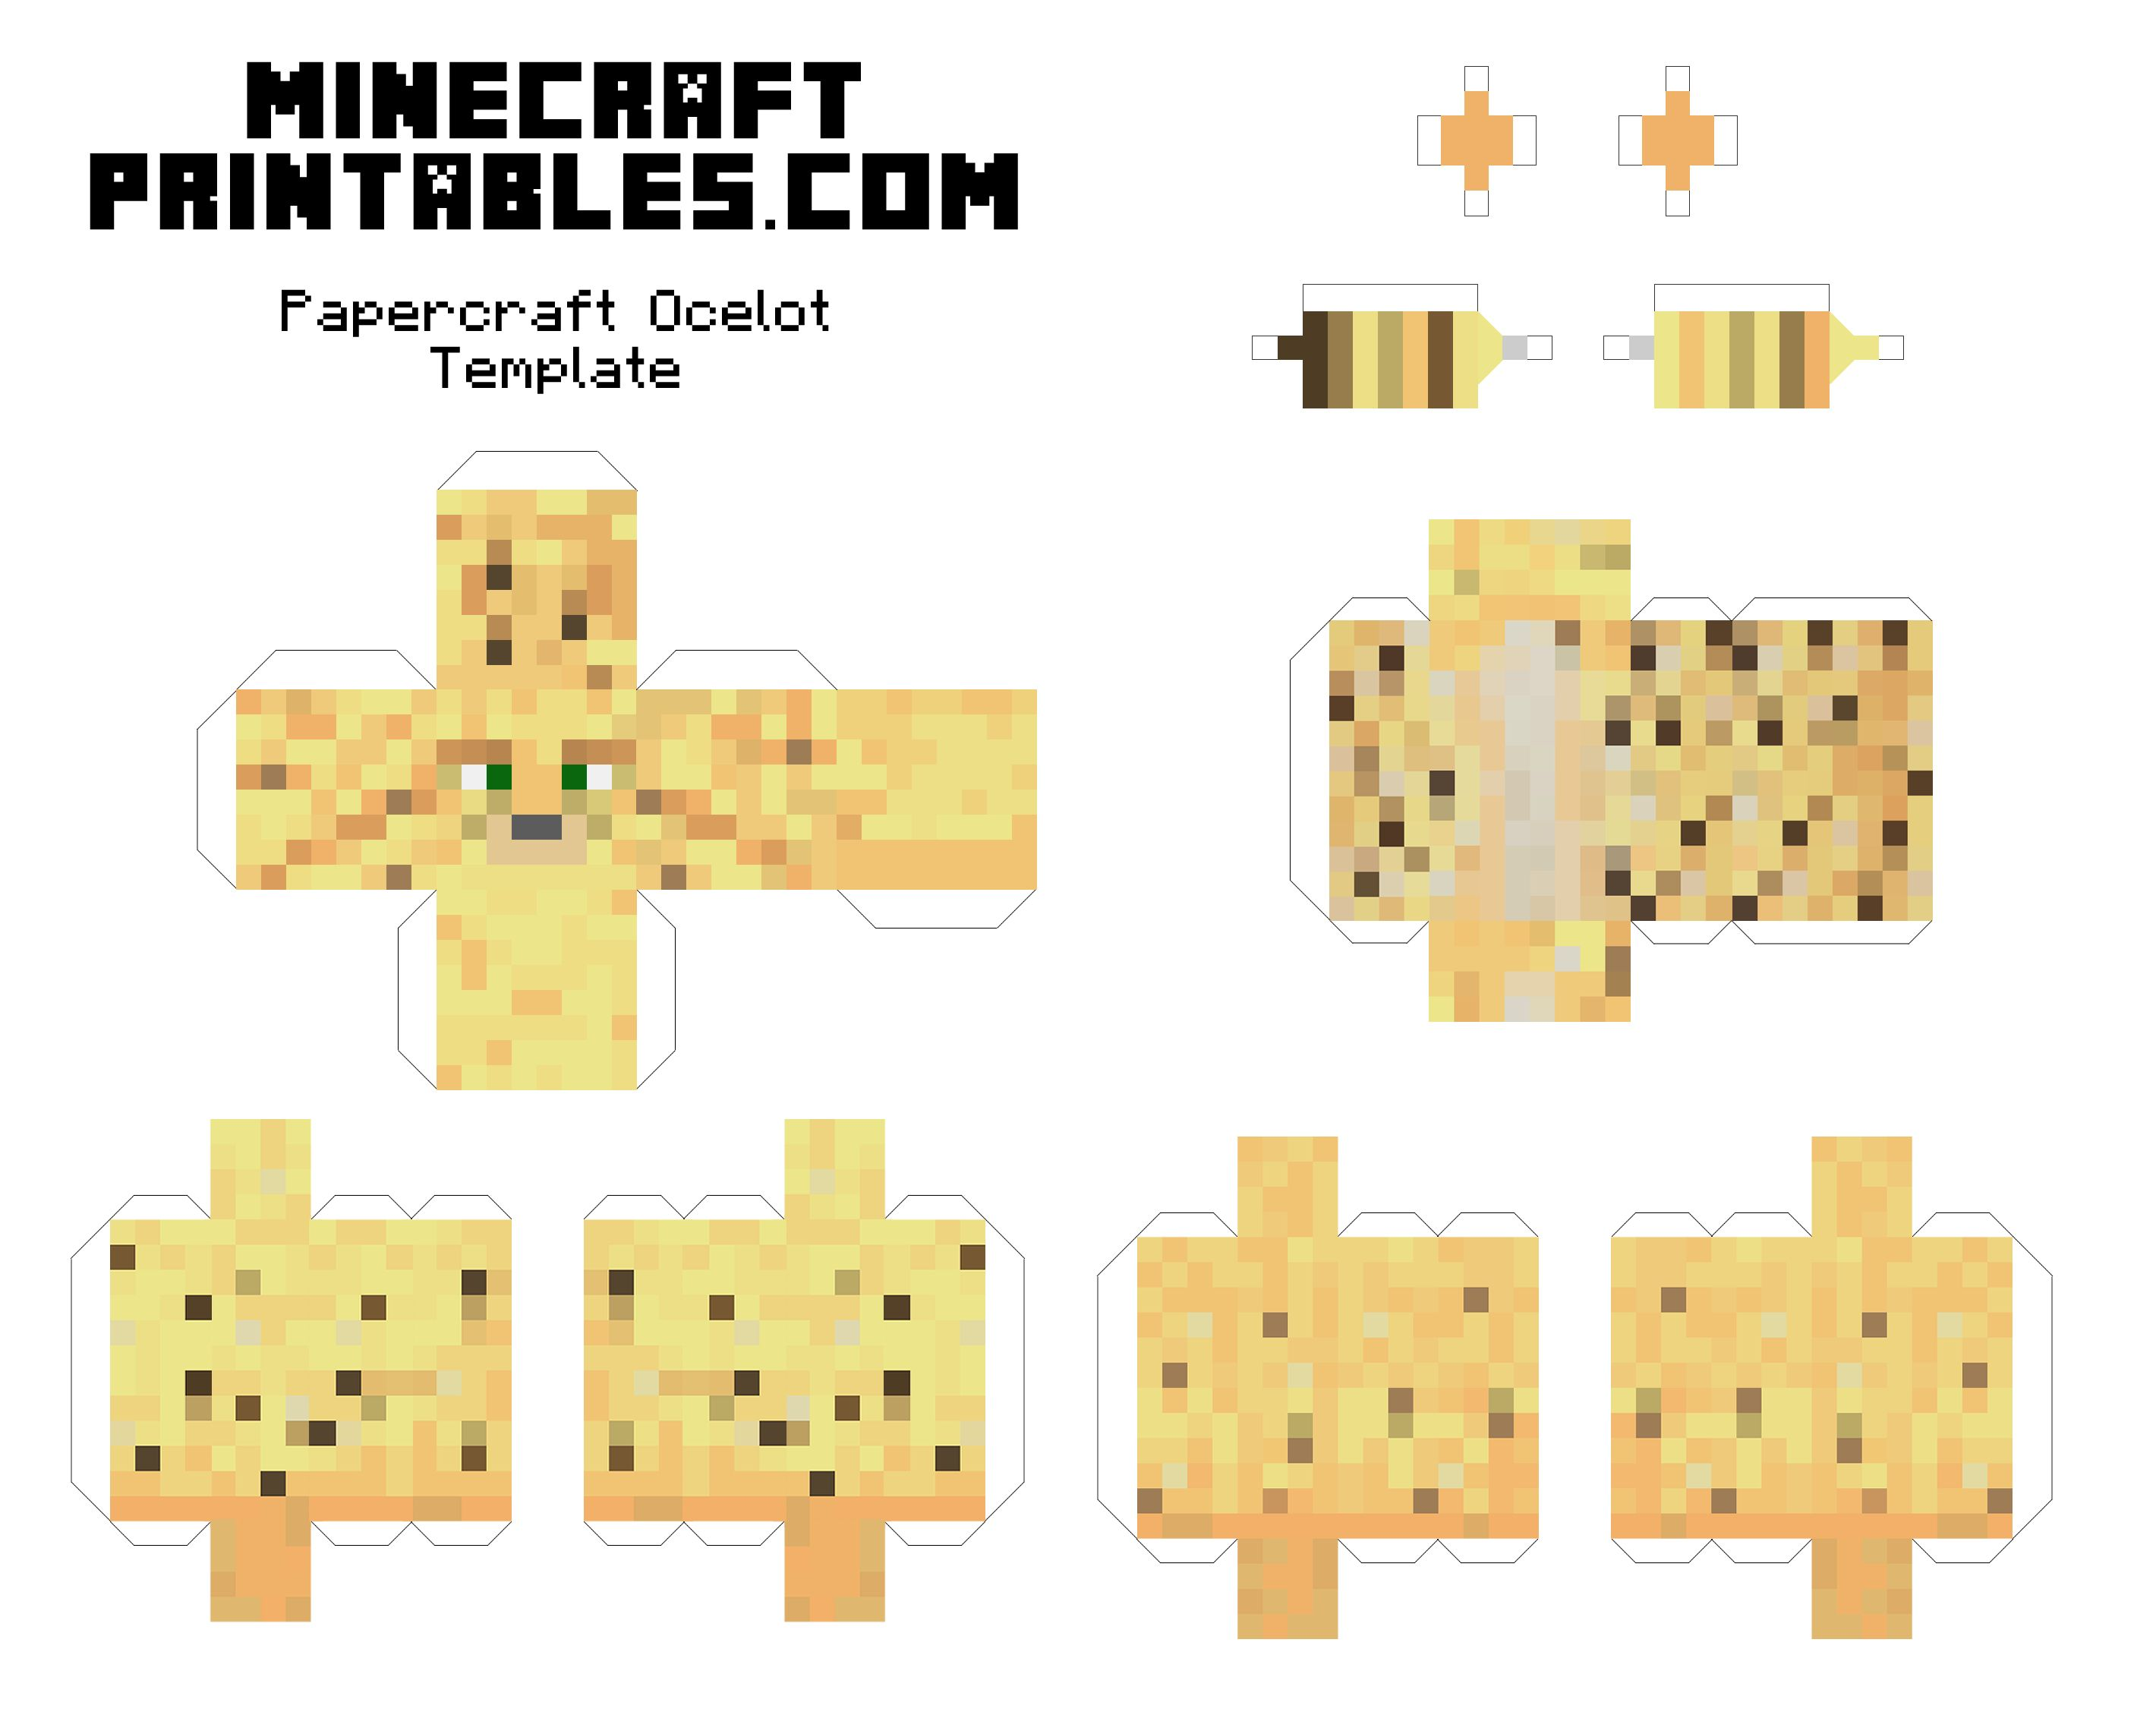 Free printable minecraft ocelot papercraft template print for Minecraft cut out templates